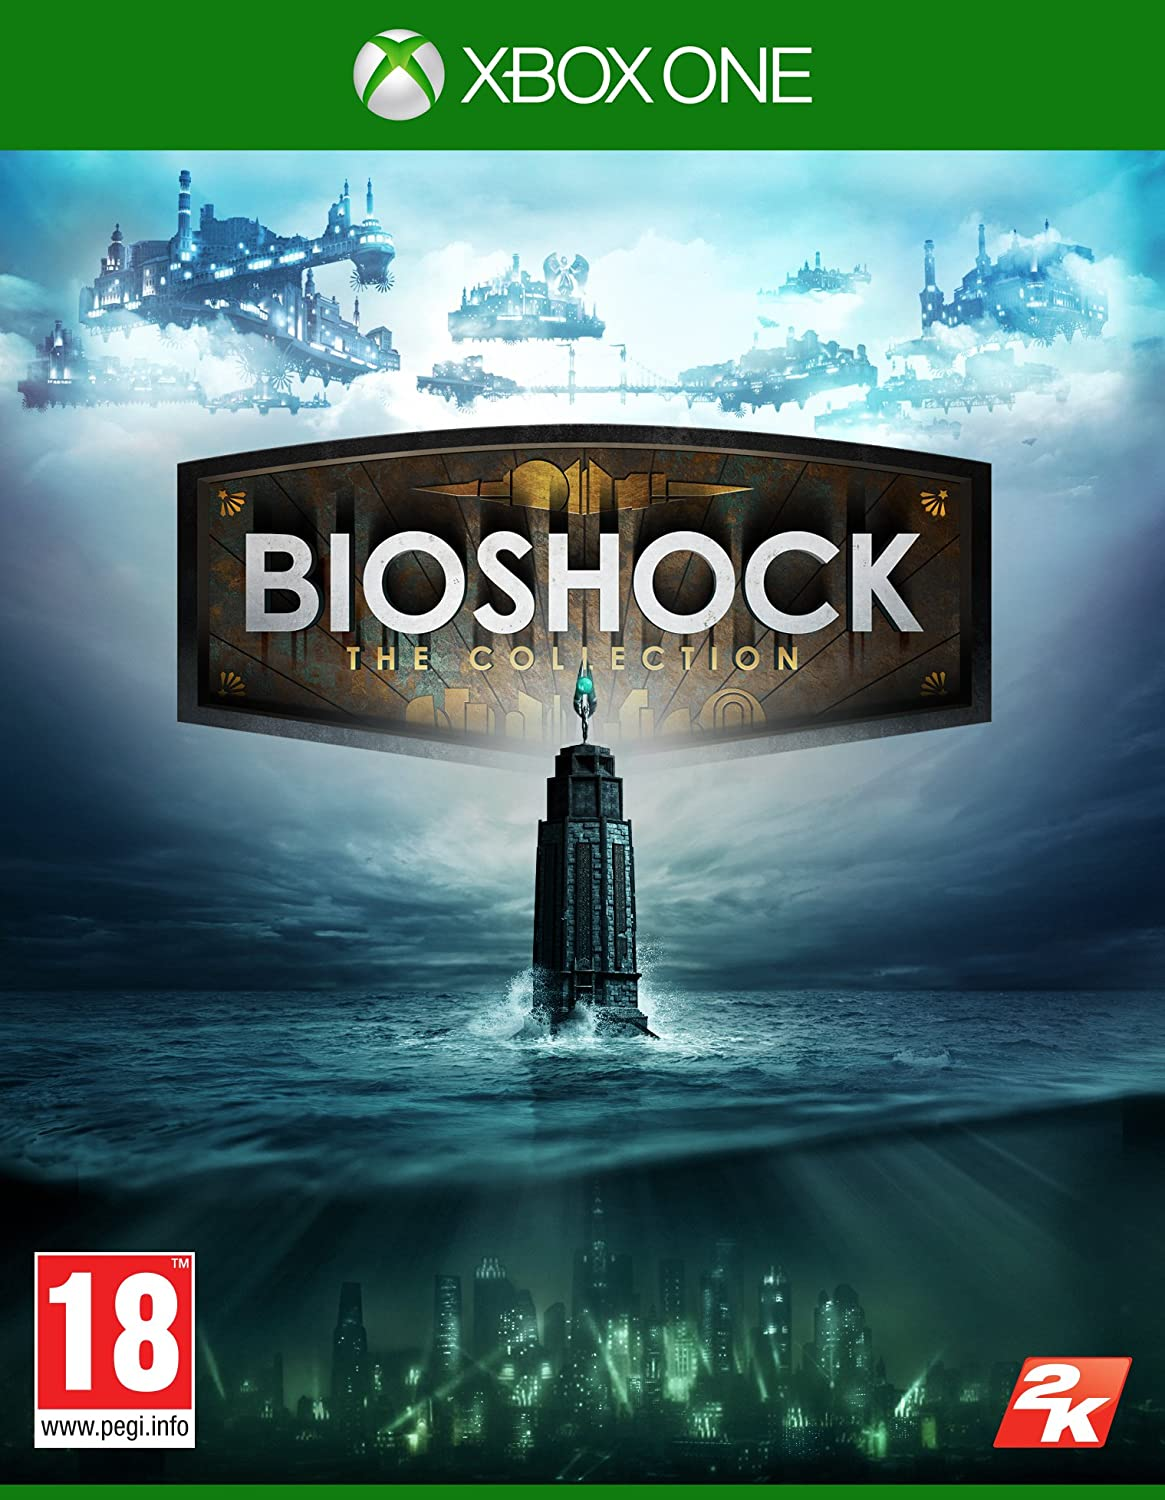 2K Bioshock: The Collection, Xbox One Básica + DLC Xbox One vídeo - Juego (Xbox One, Xbox One, Shooter, M (Maduro)): Amazon.es: Videojuegos